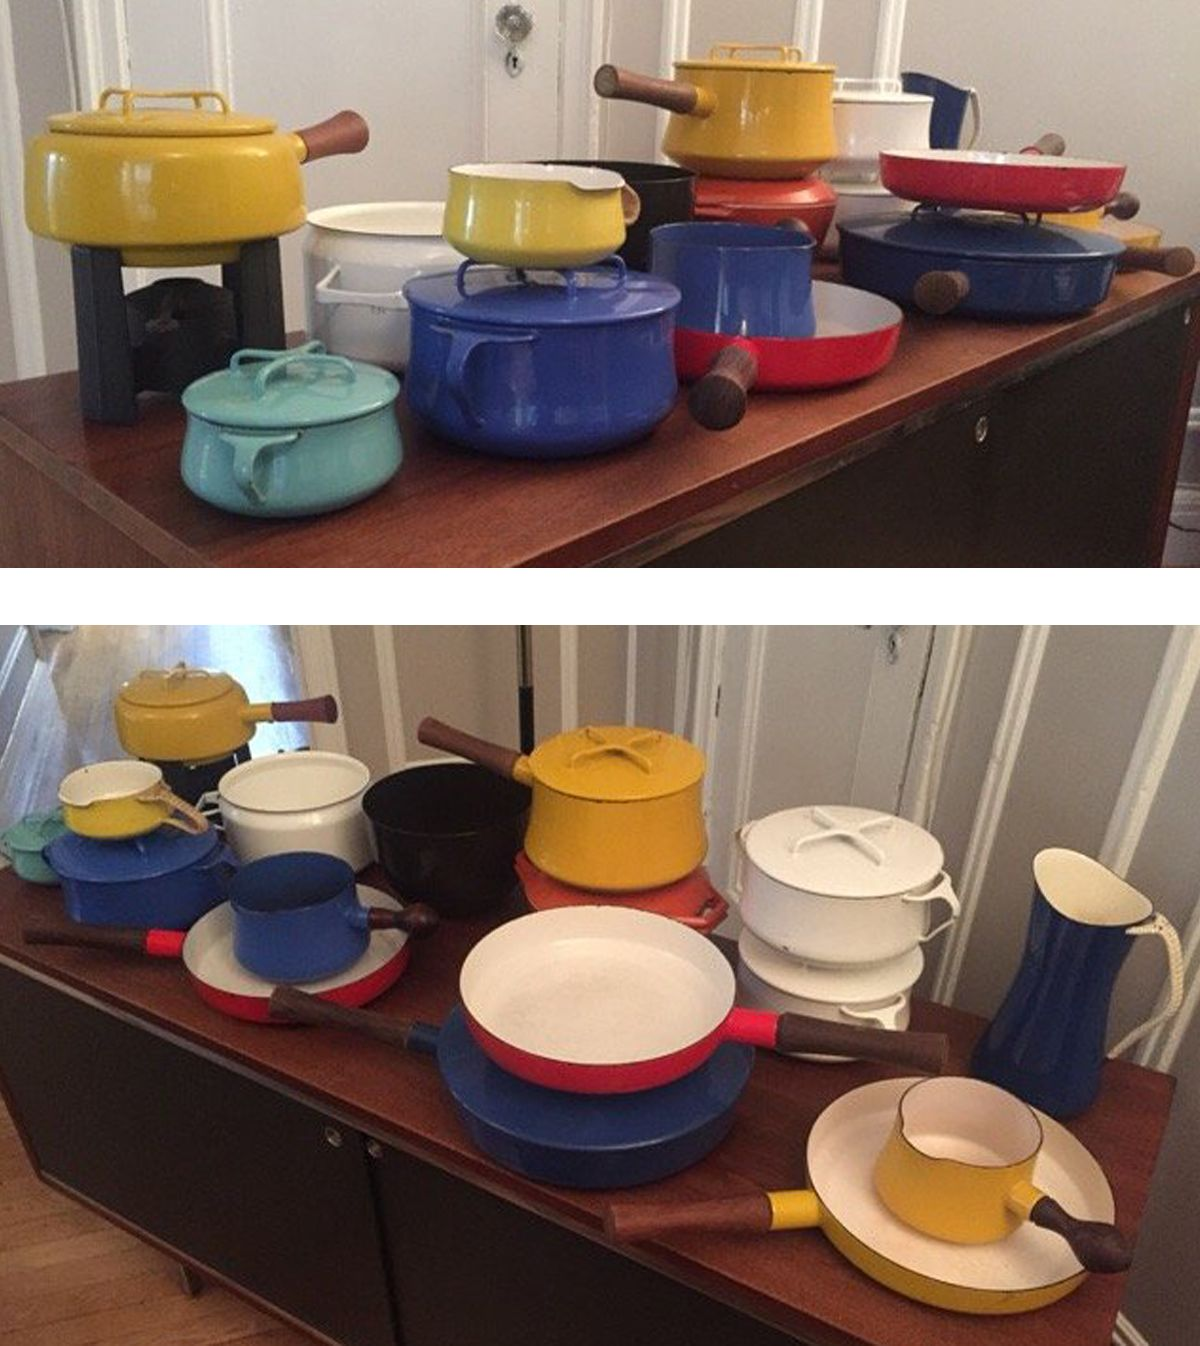 A vintage collection of Dansk cookware, ready to get to work in your kitchen.